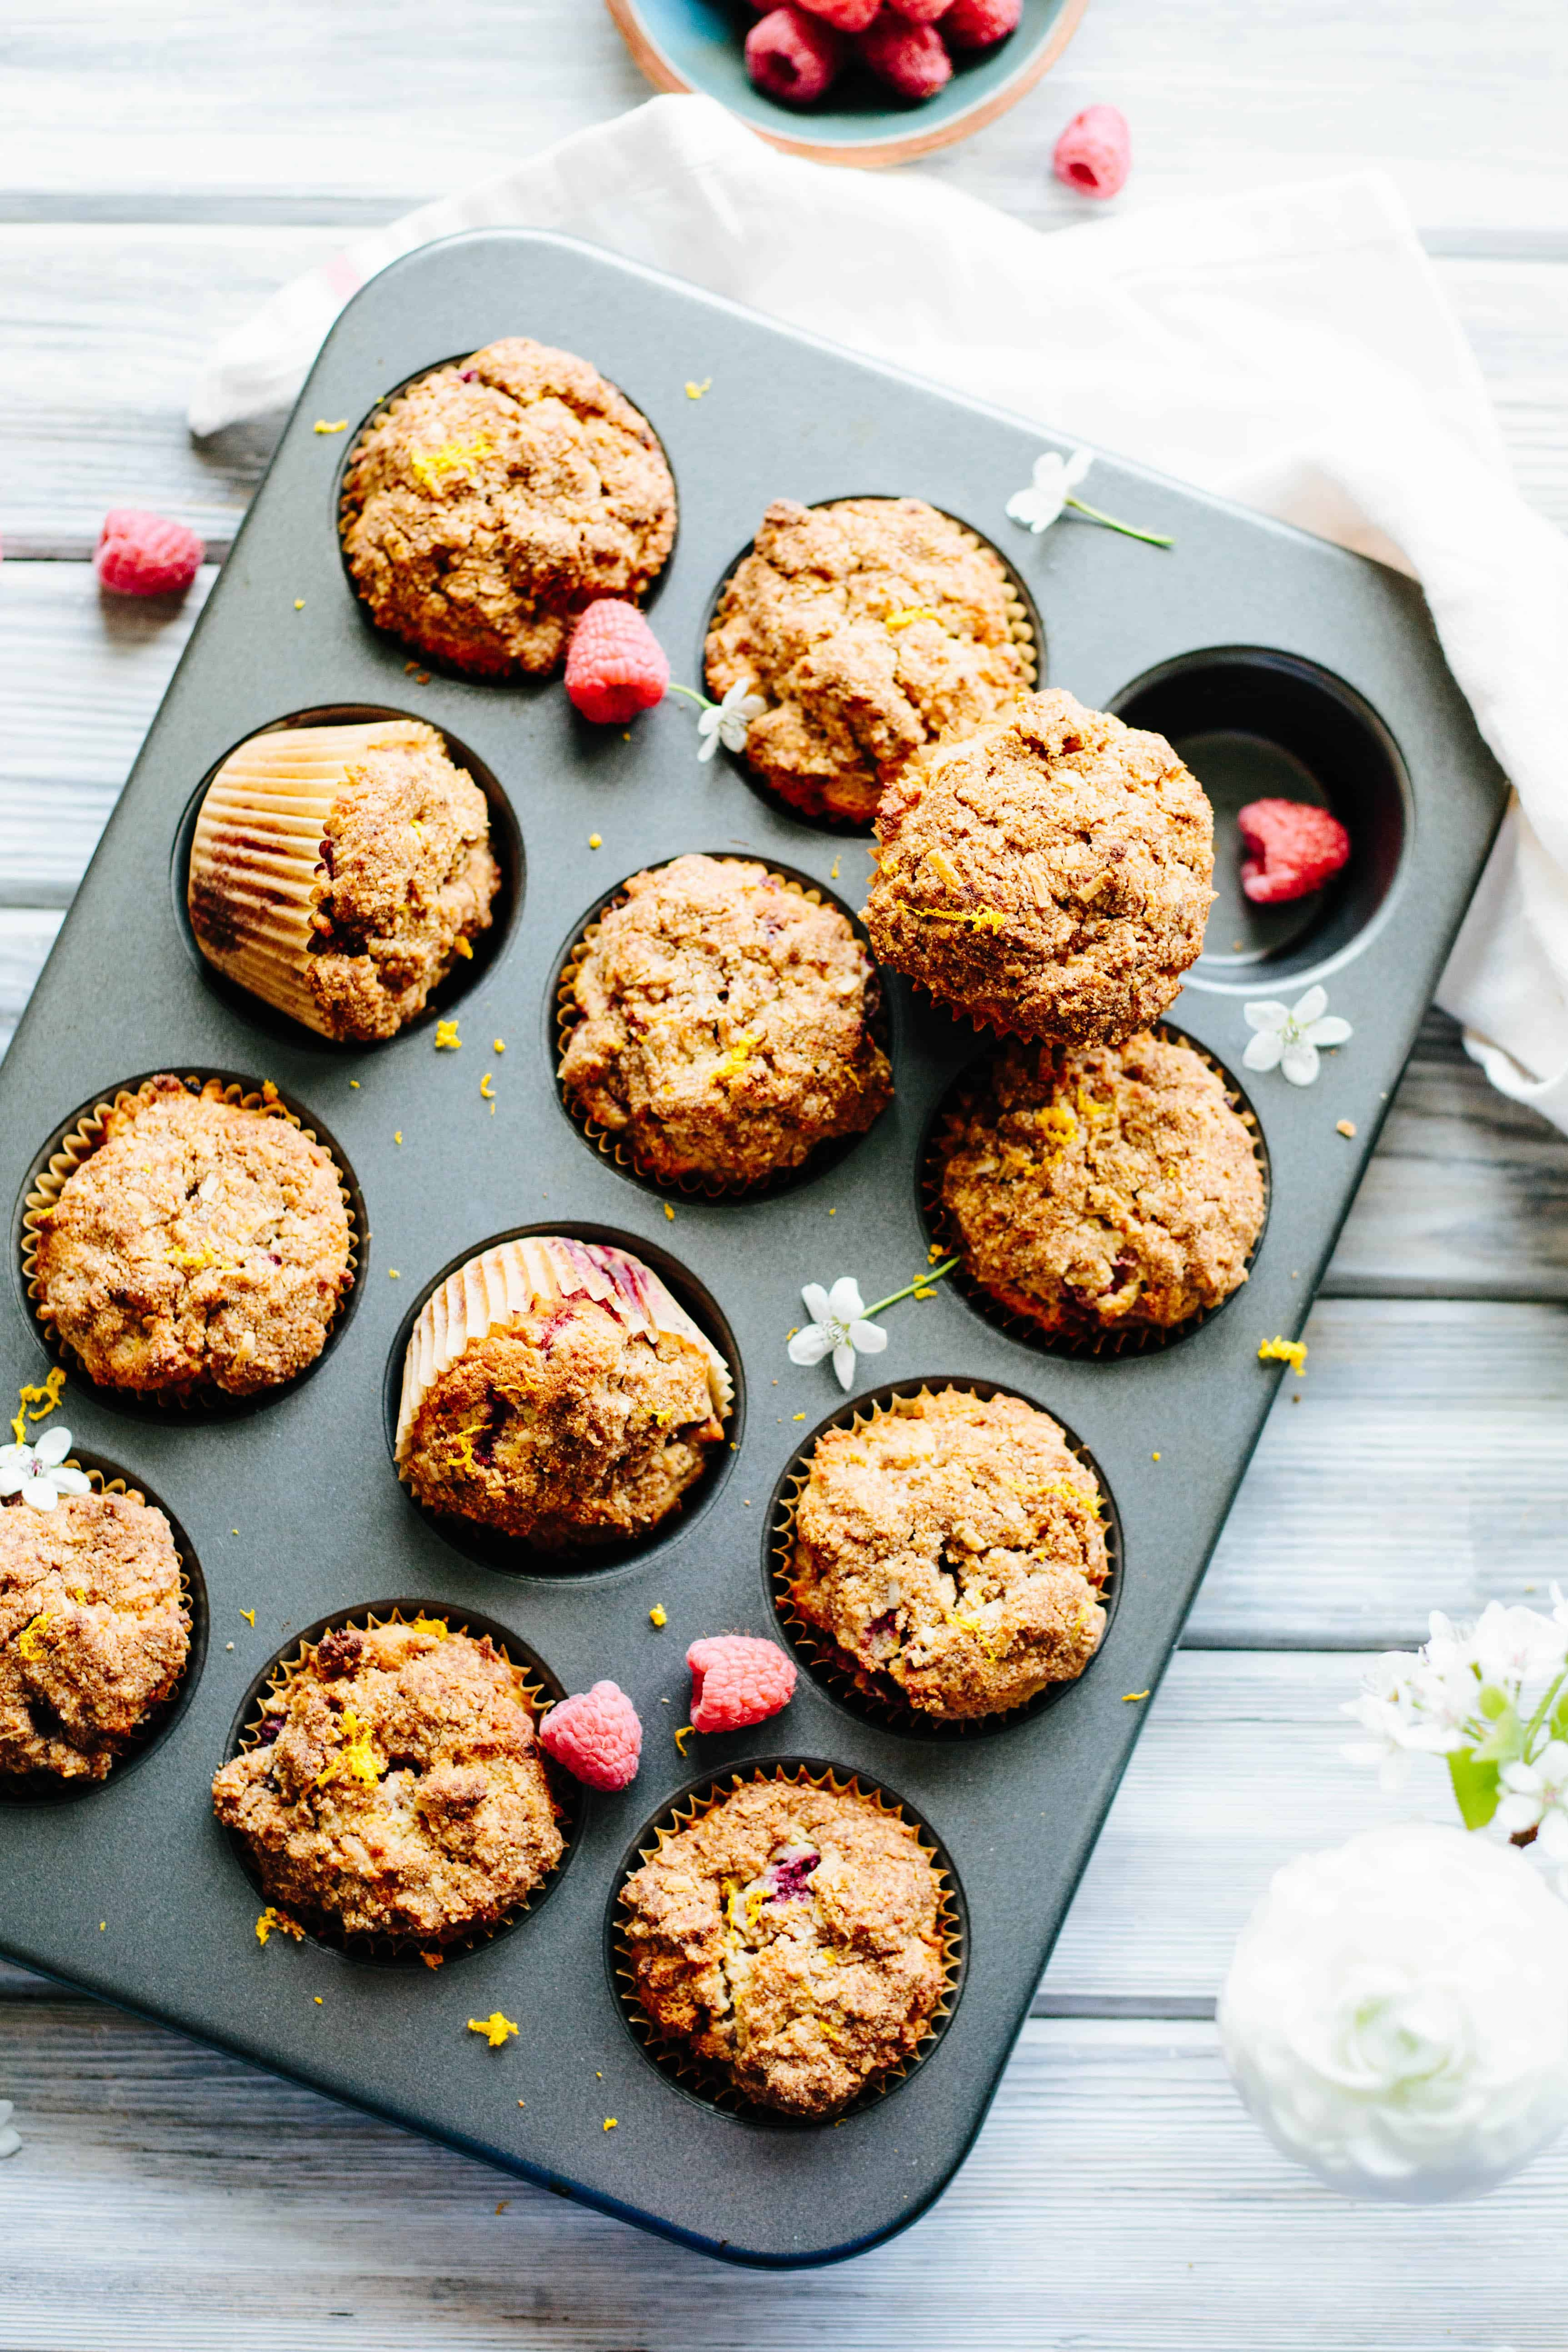 These Paleo Orange Raspberry Crumb Muffins are dairy free, gluten free, grain free and refined sugar free, but taste like a yummy treat! #easy #paleo #muffin #raspberry #orange #crumb #recipe #healthy | ColeyCooks.com